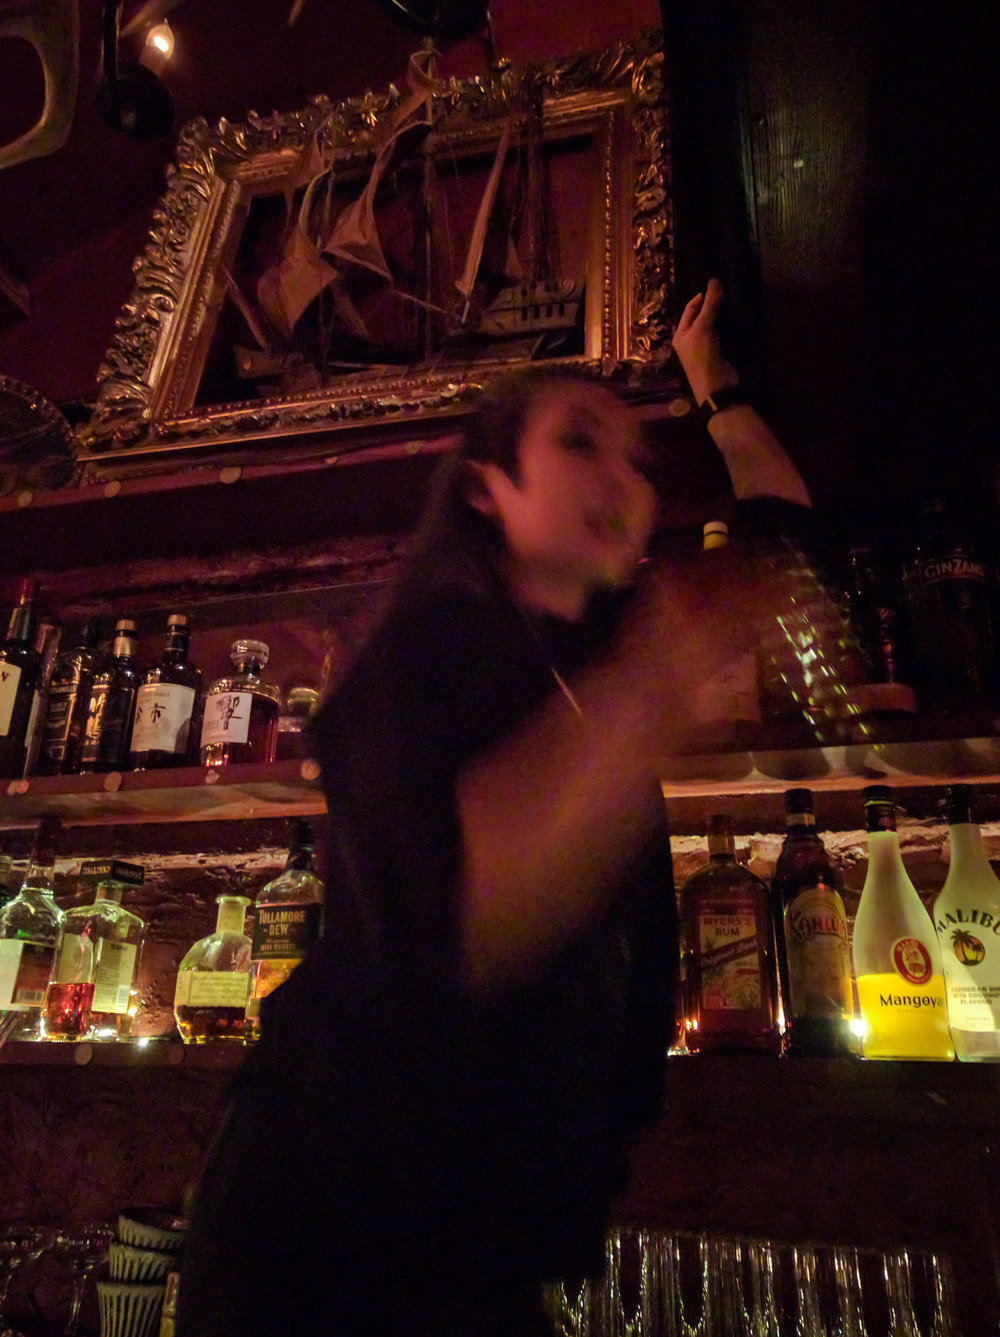 Serving drinks from the 2nd to 3rd floors in the Bar Albatross in Golden Gai